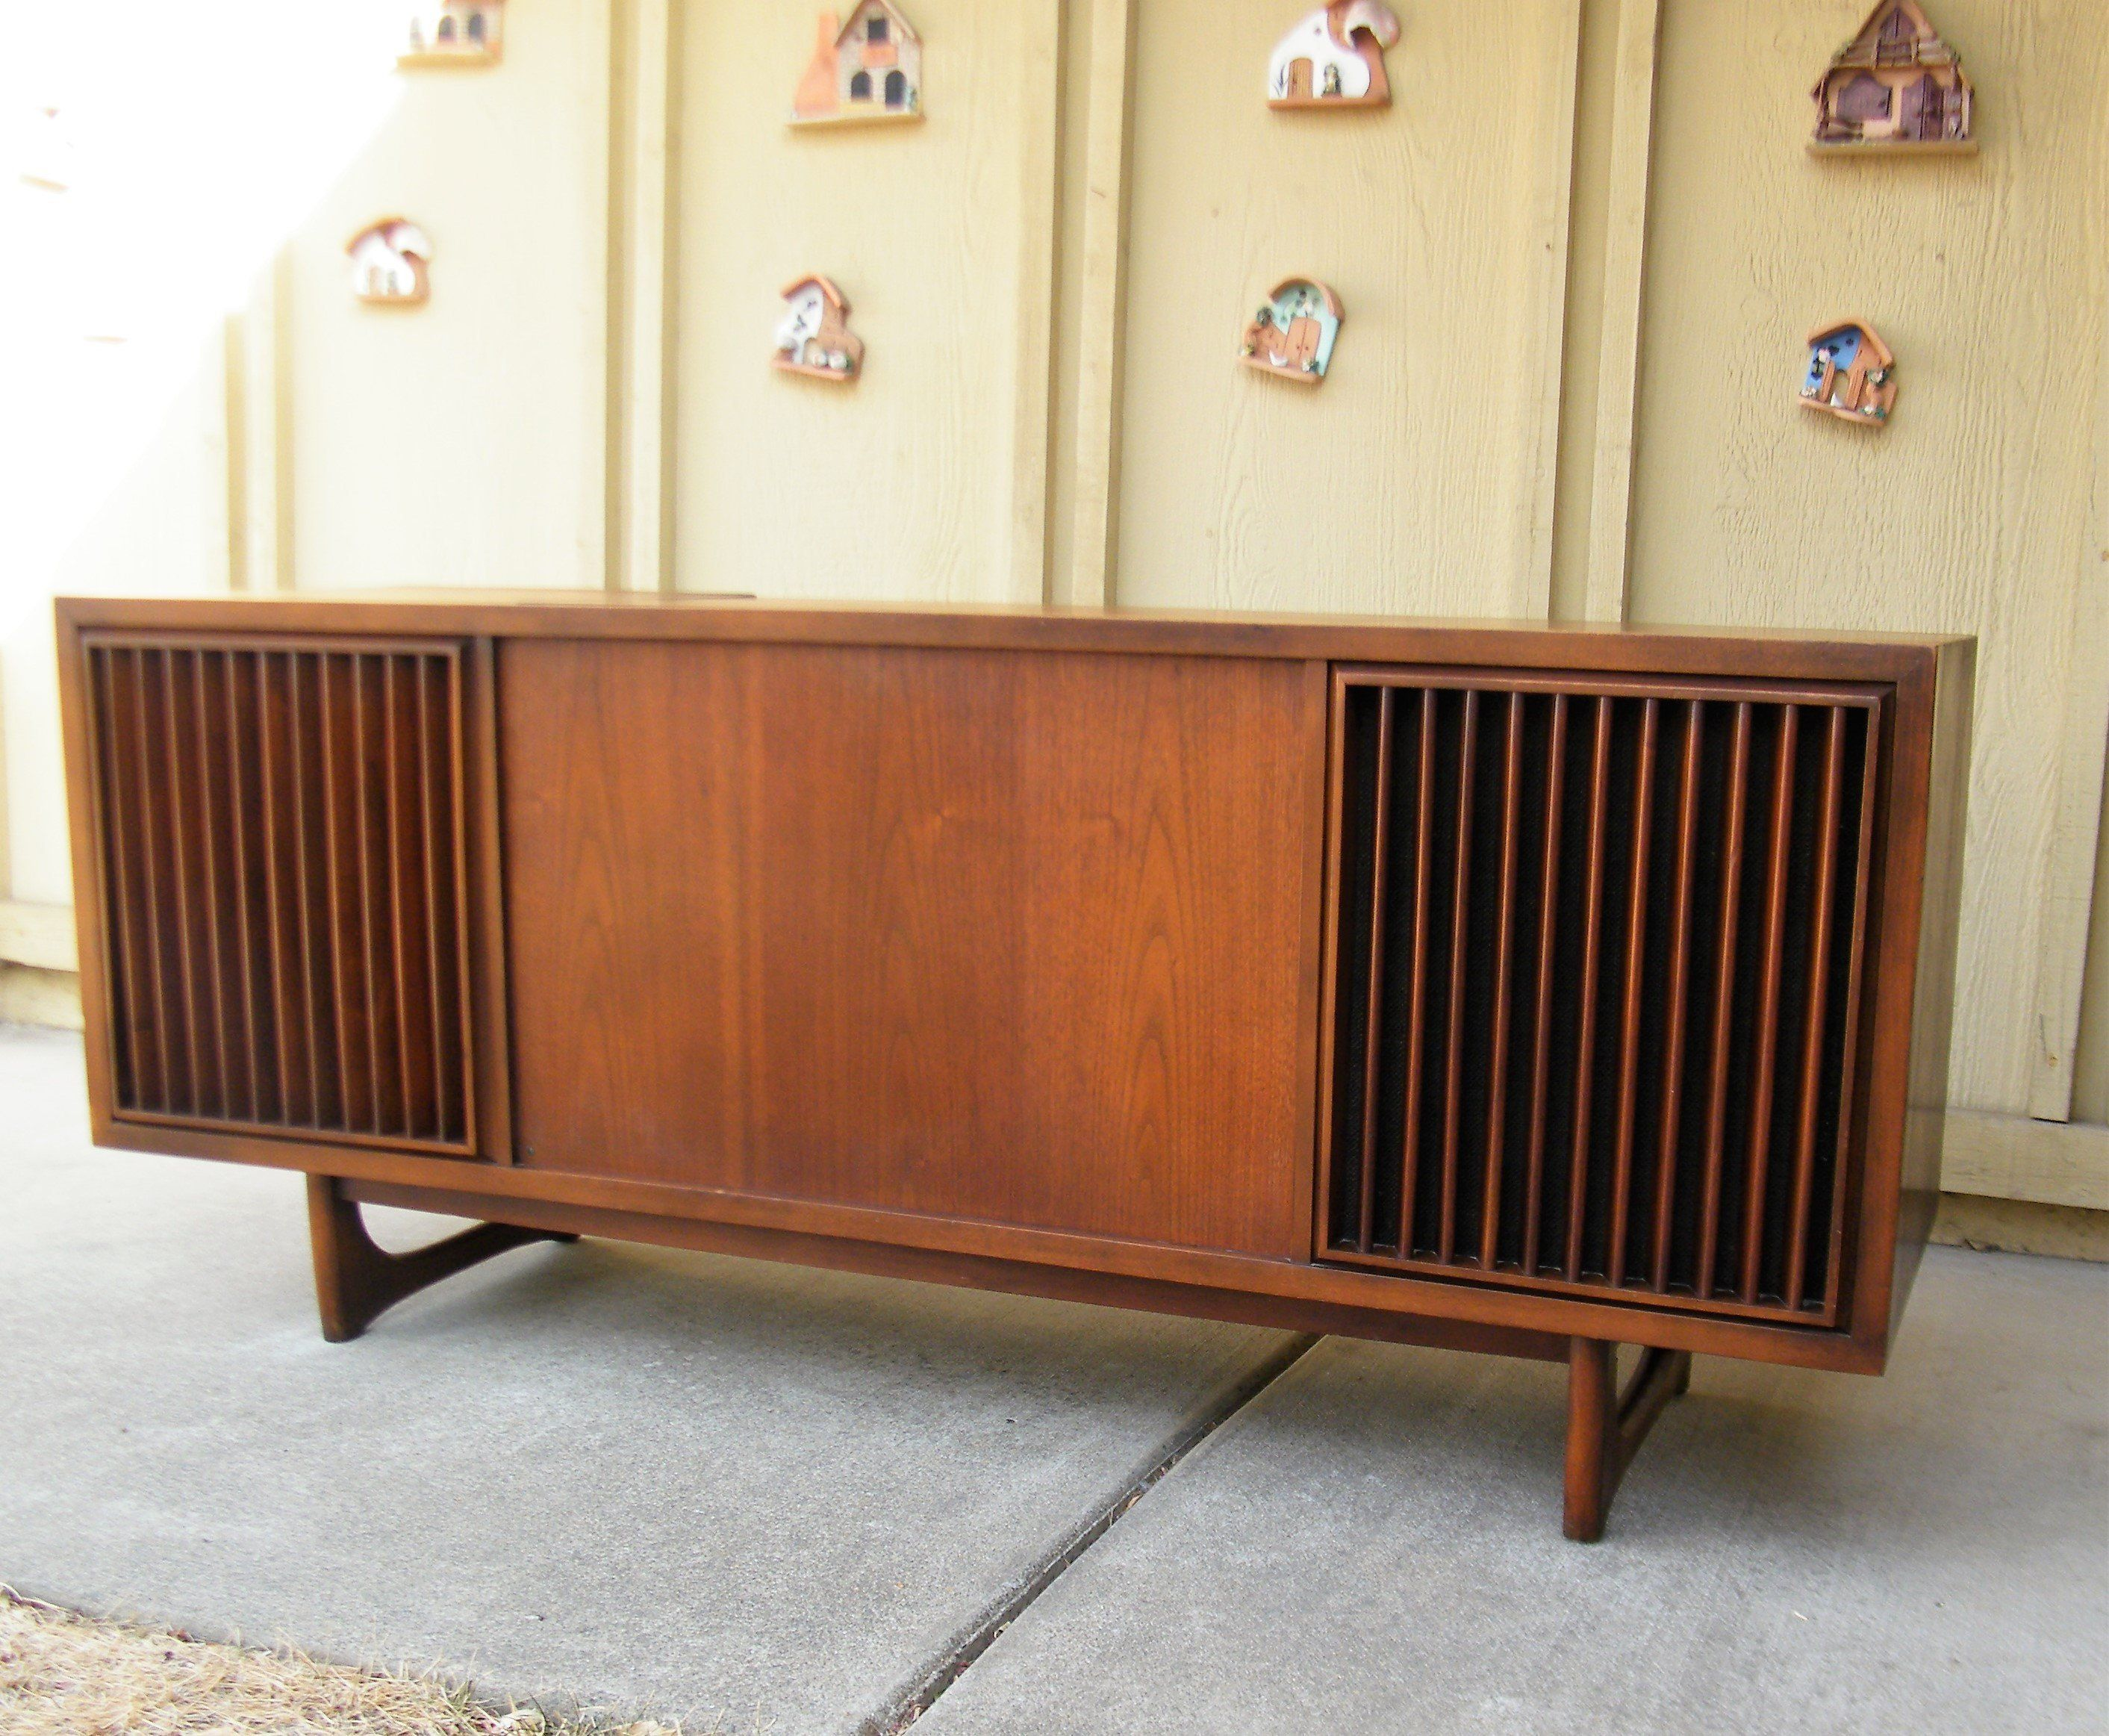 Sold Mid Century Rca Victor Stereo Console Sold Etsy Stereo Console Vintage Stereo Console Modern Console